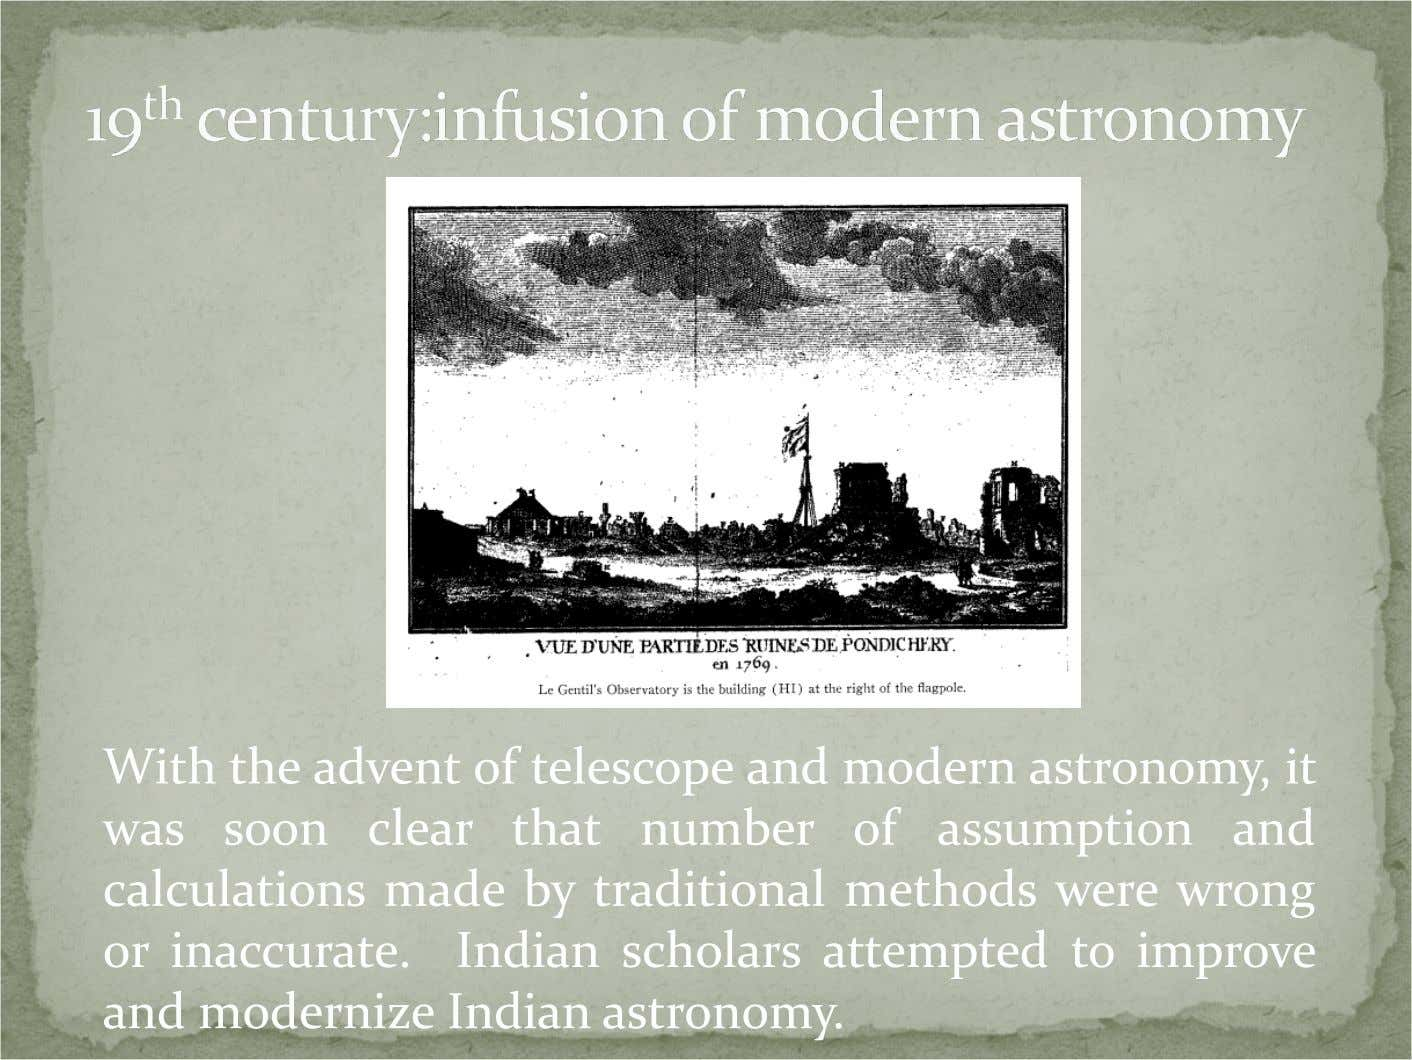 With the advent of telescope and modern astronomy, it was soon clear that number of